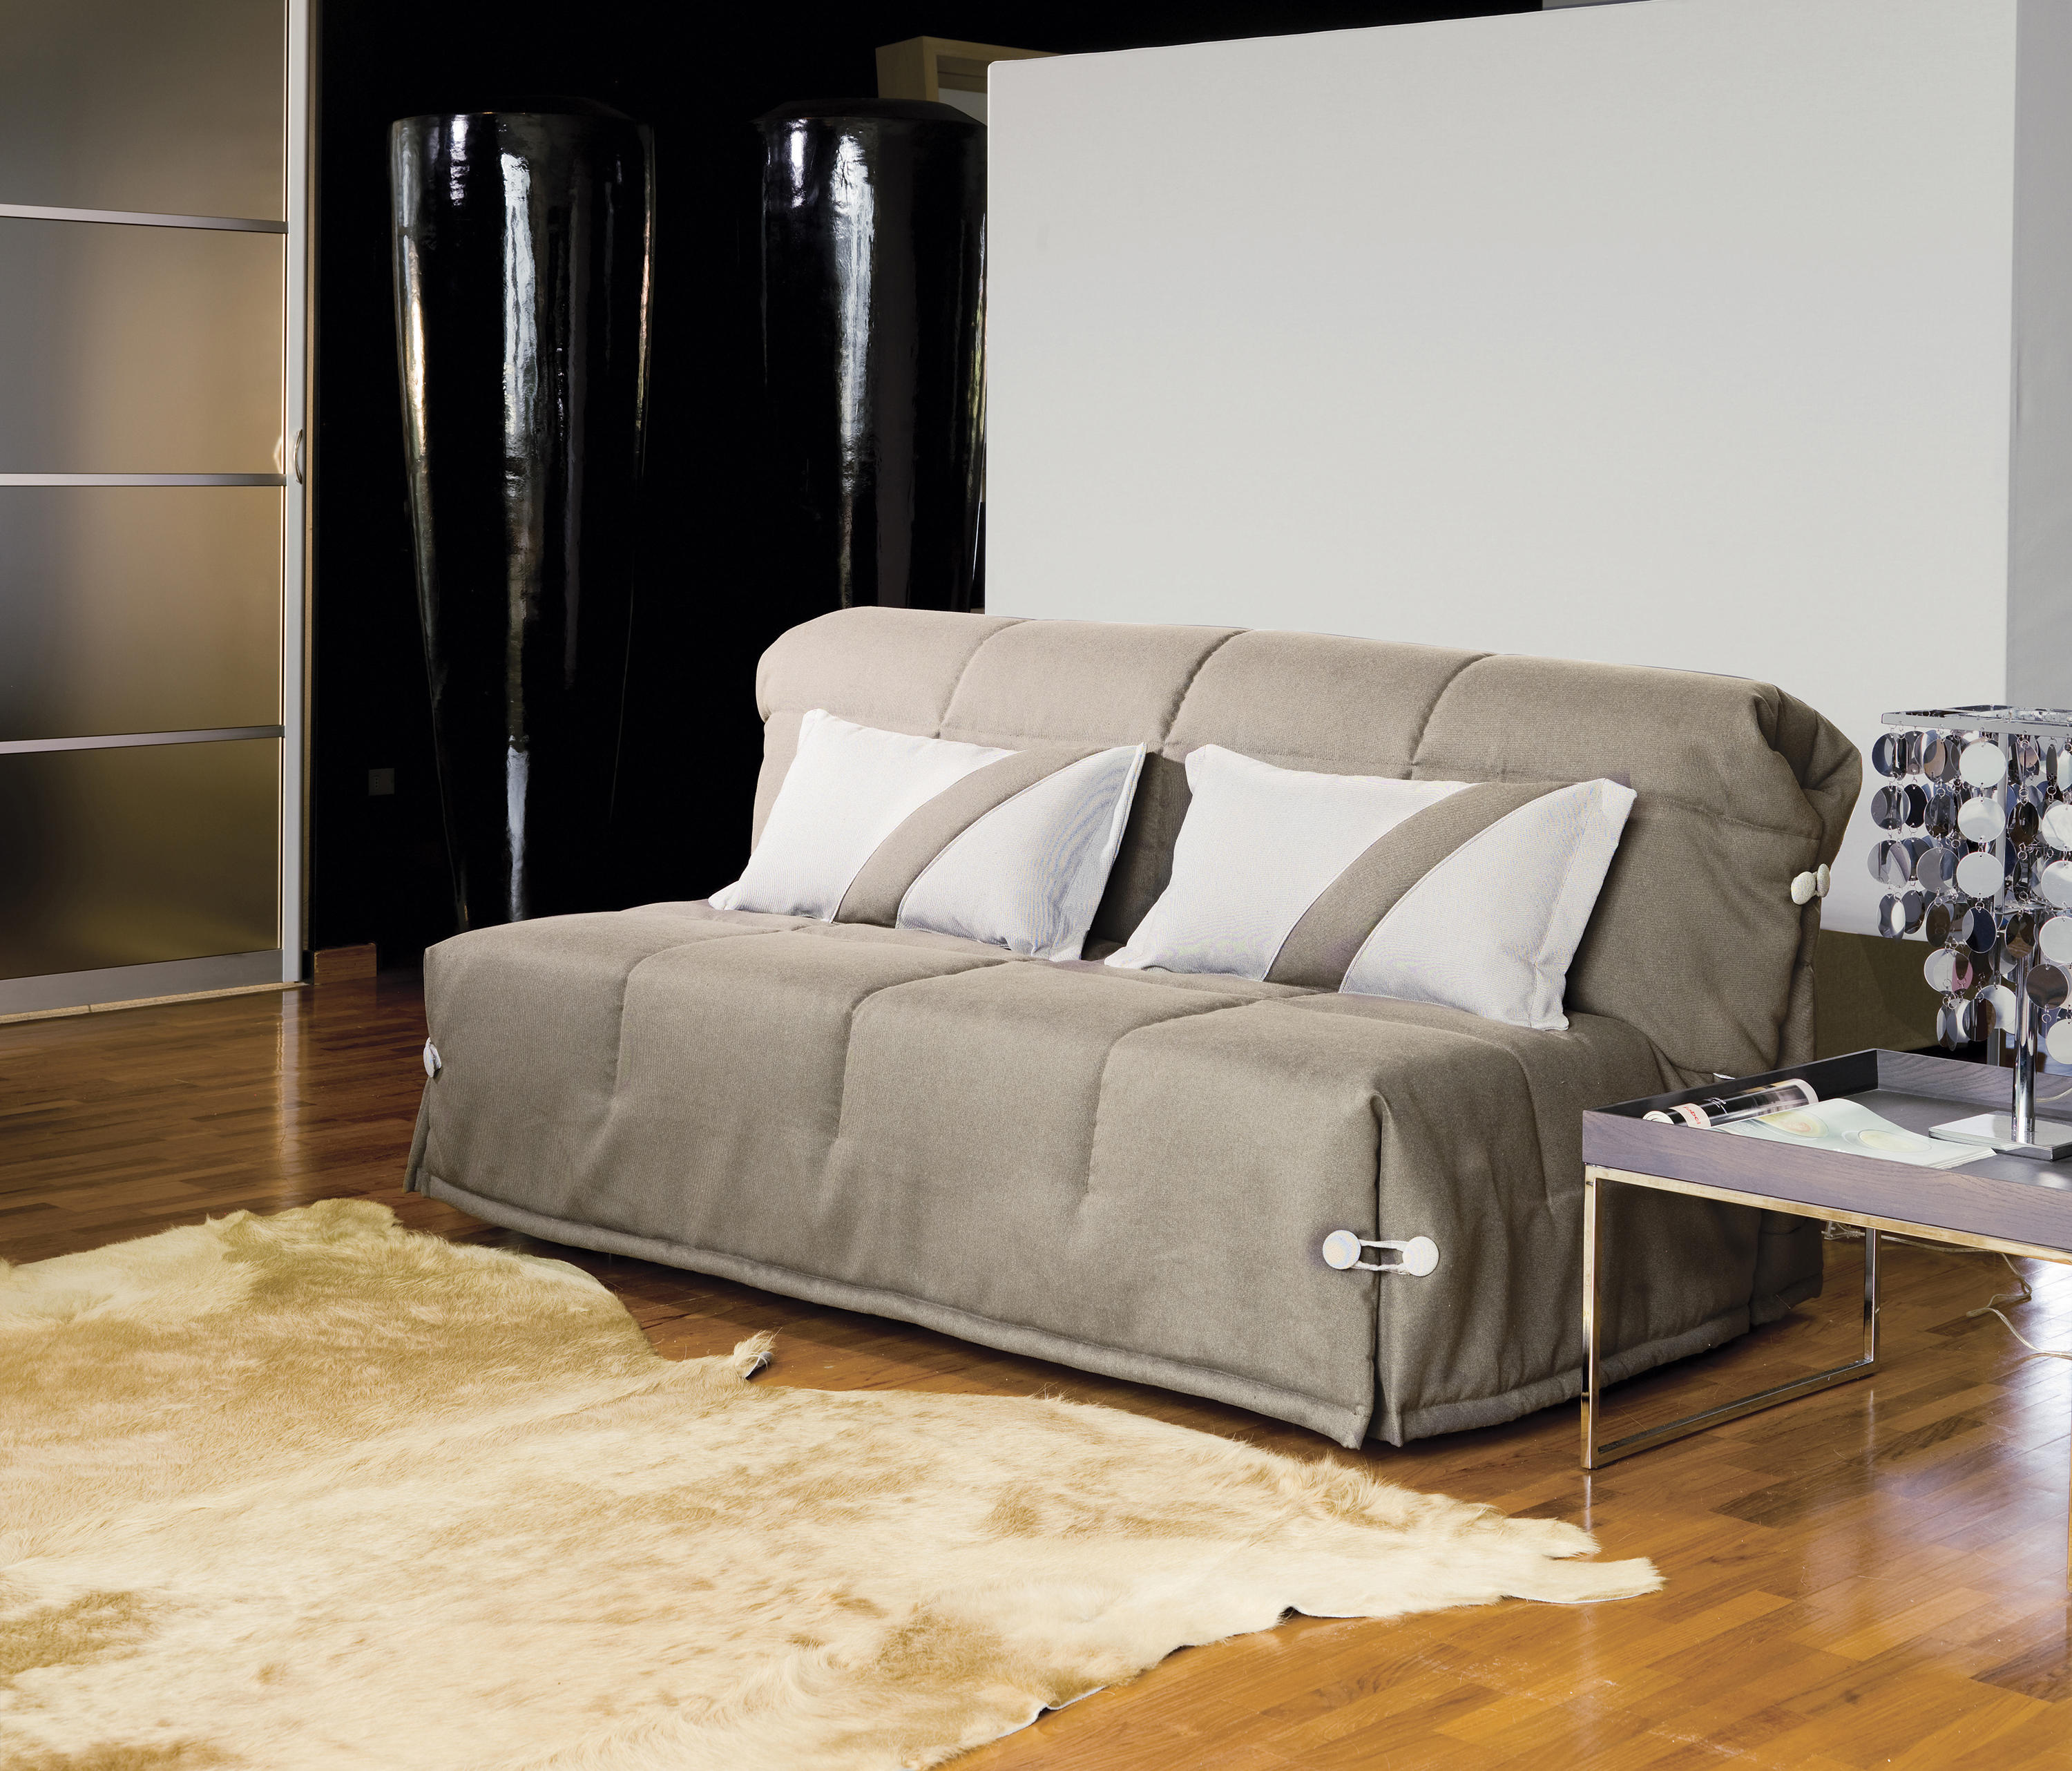 Ginger sofa beds from milano bedding architonic for Milano bedding